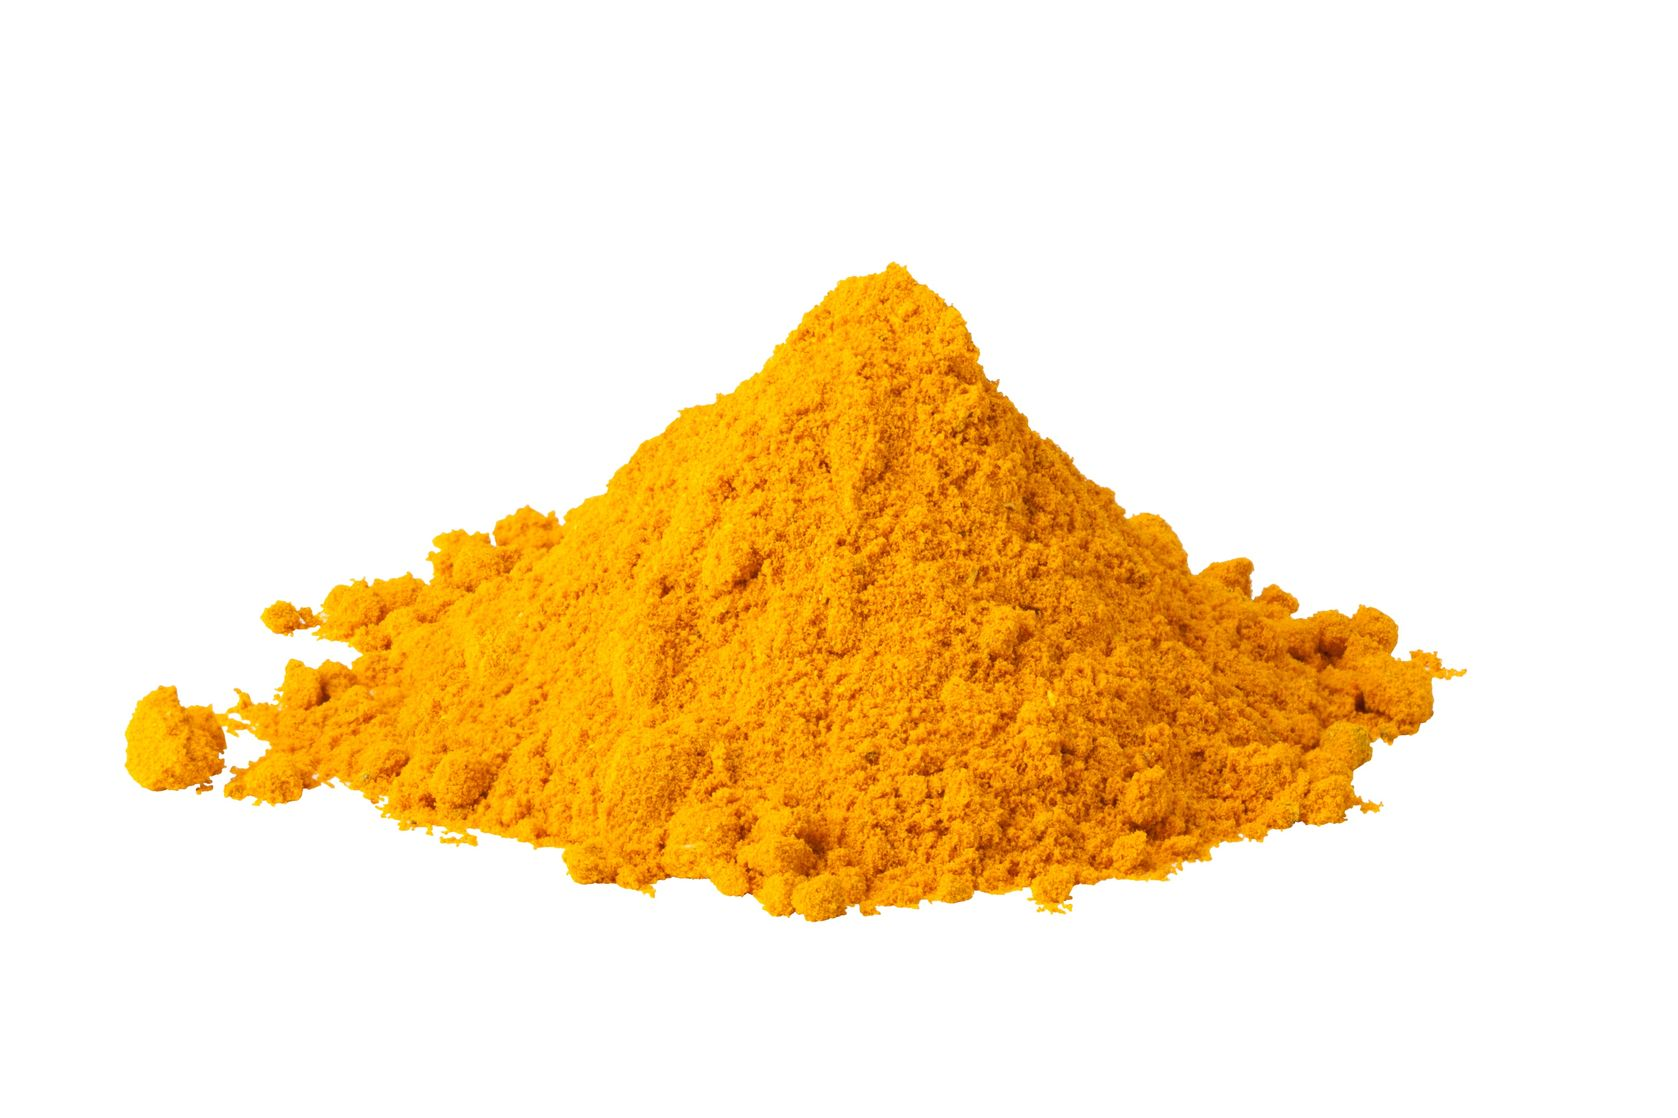 curcumin improves fatty liver, diabetes and heart health in overweight and obese people